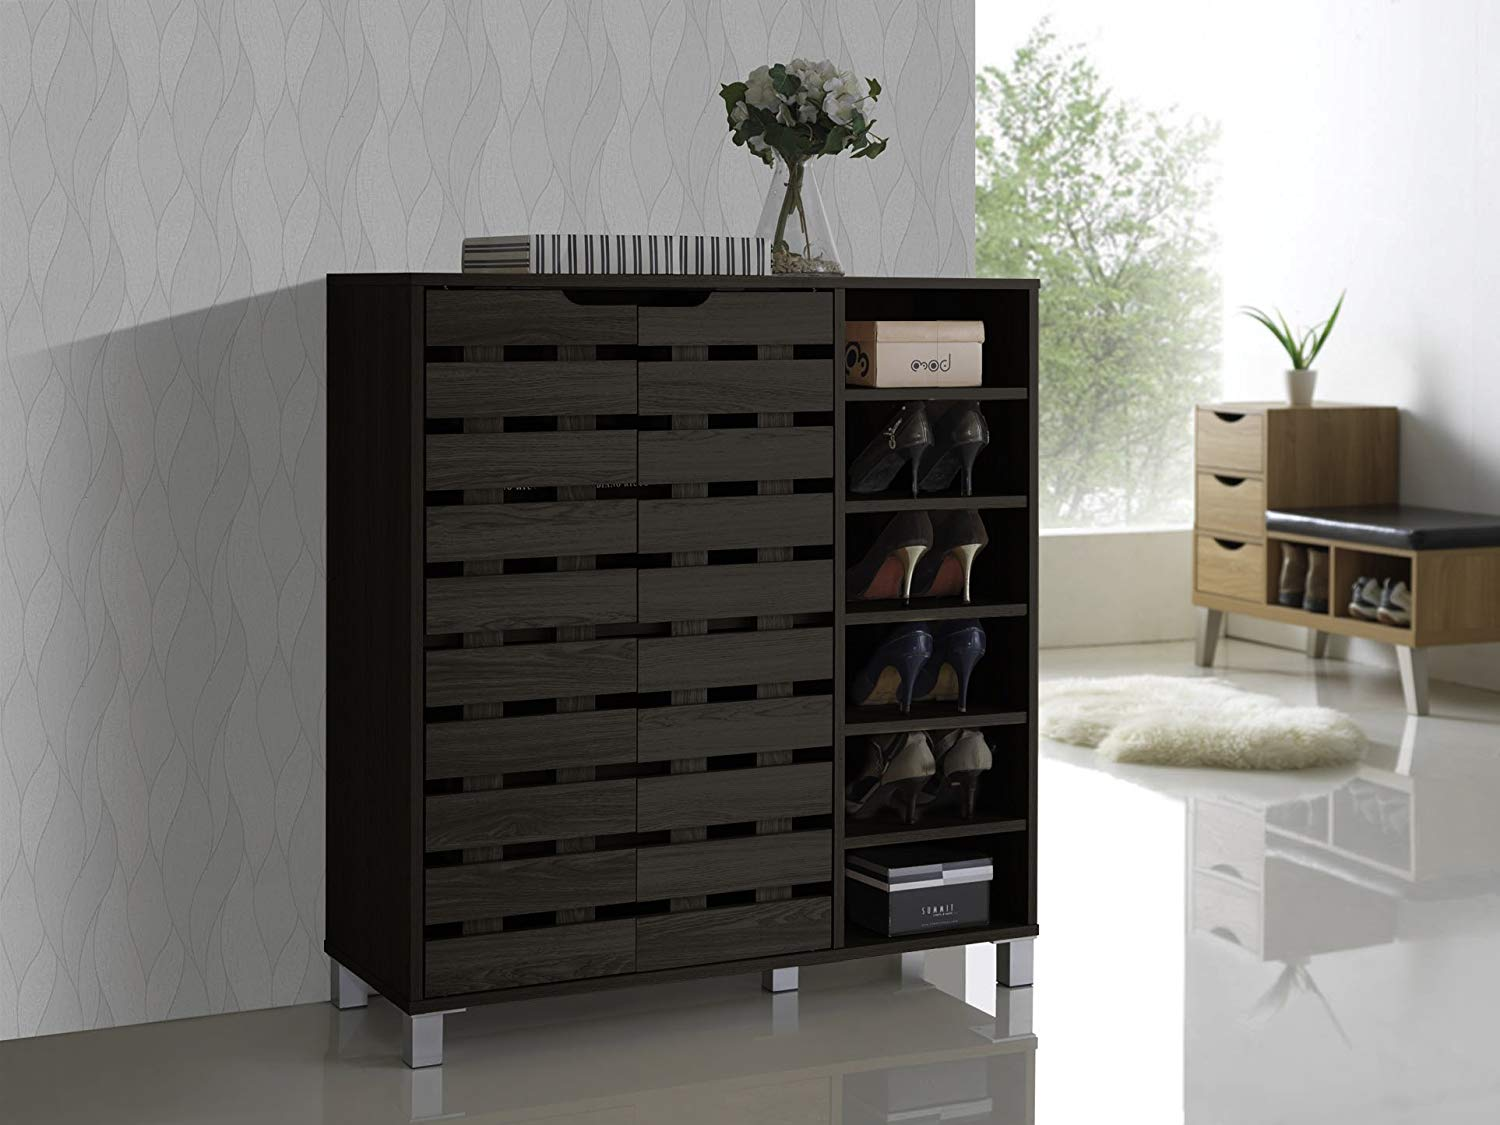 large-entryway-table-with-built-in-shoe-cabinet-and-open-shelves